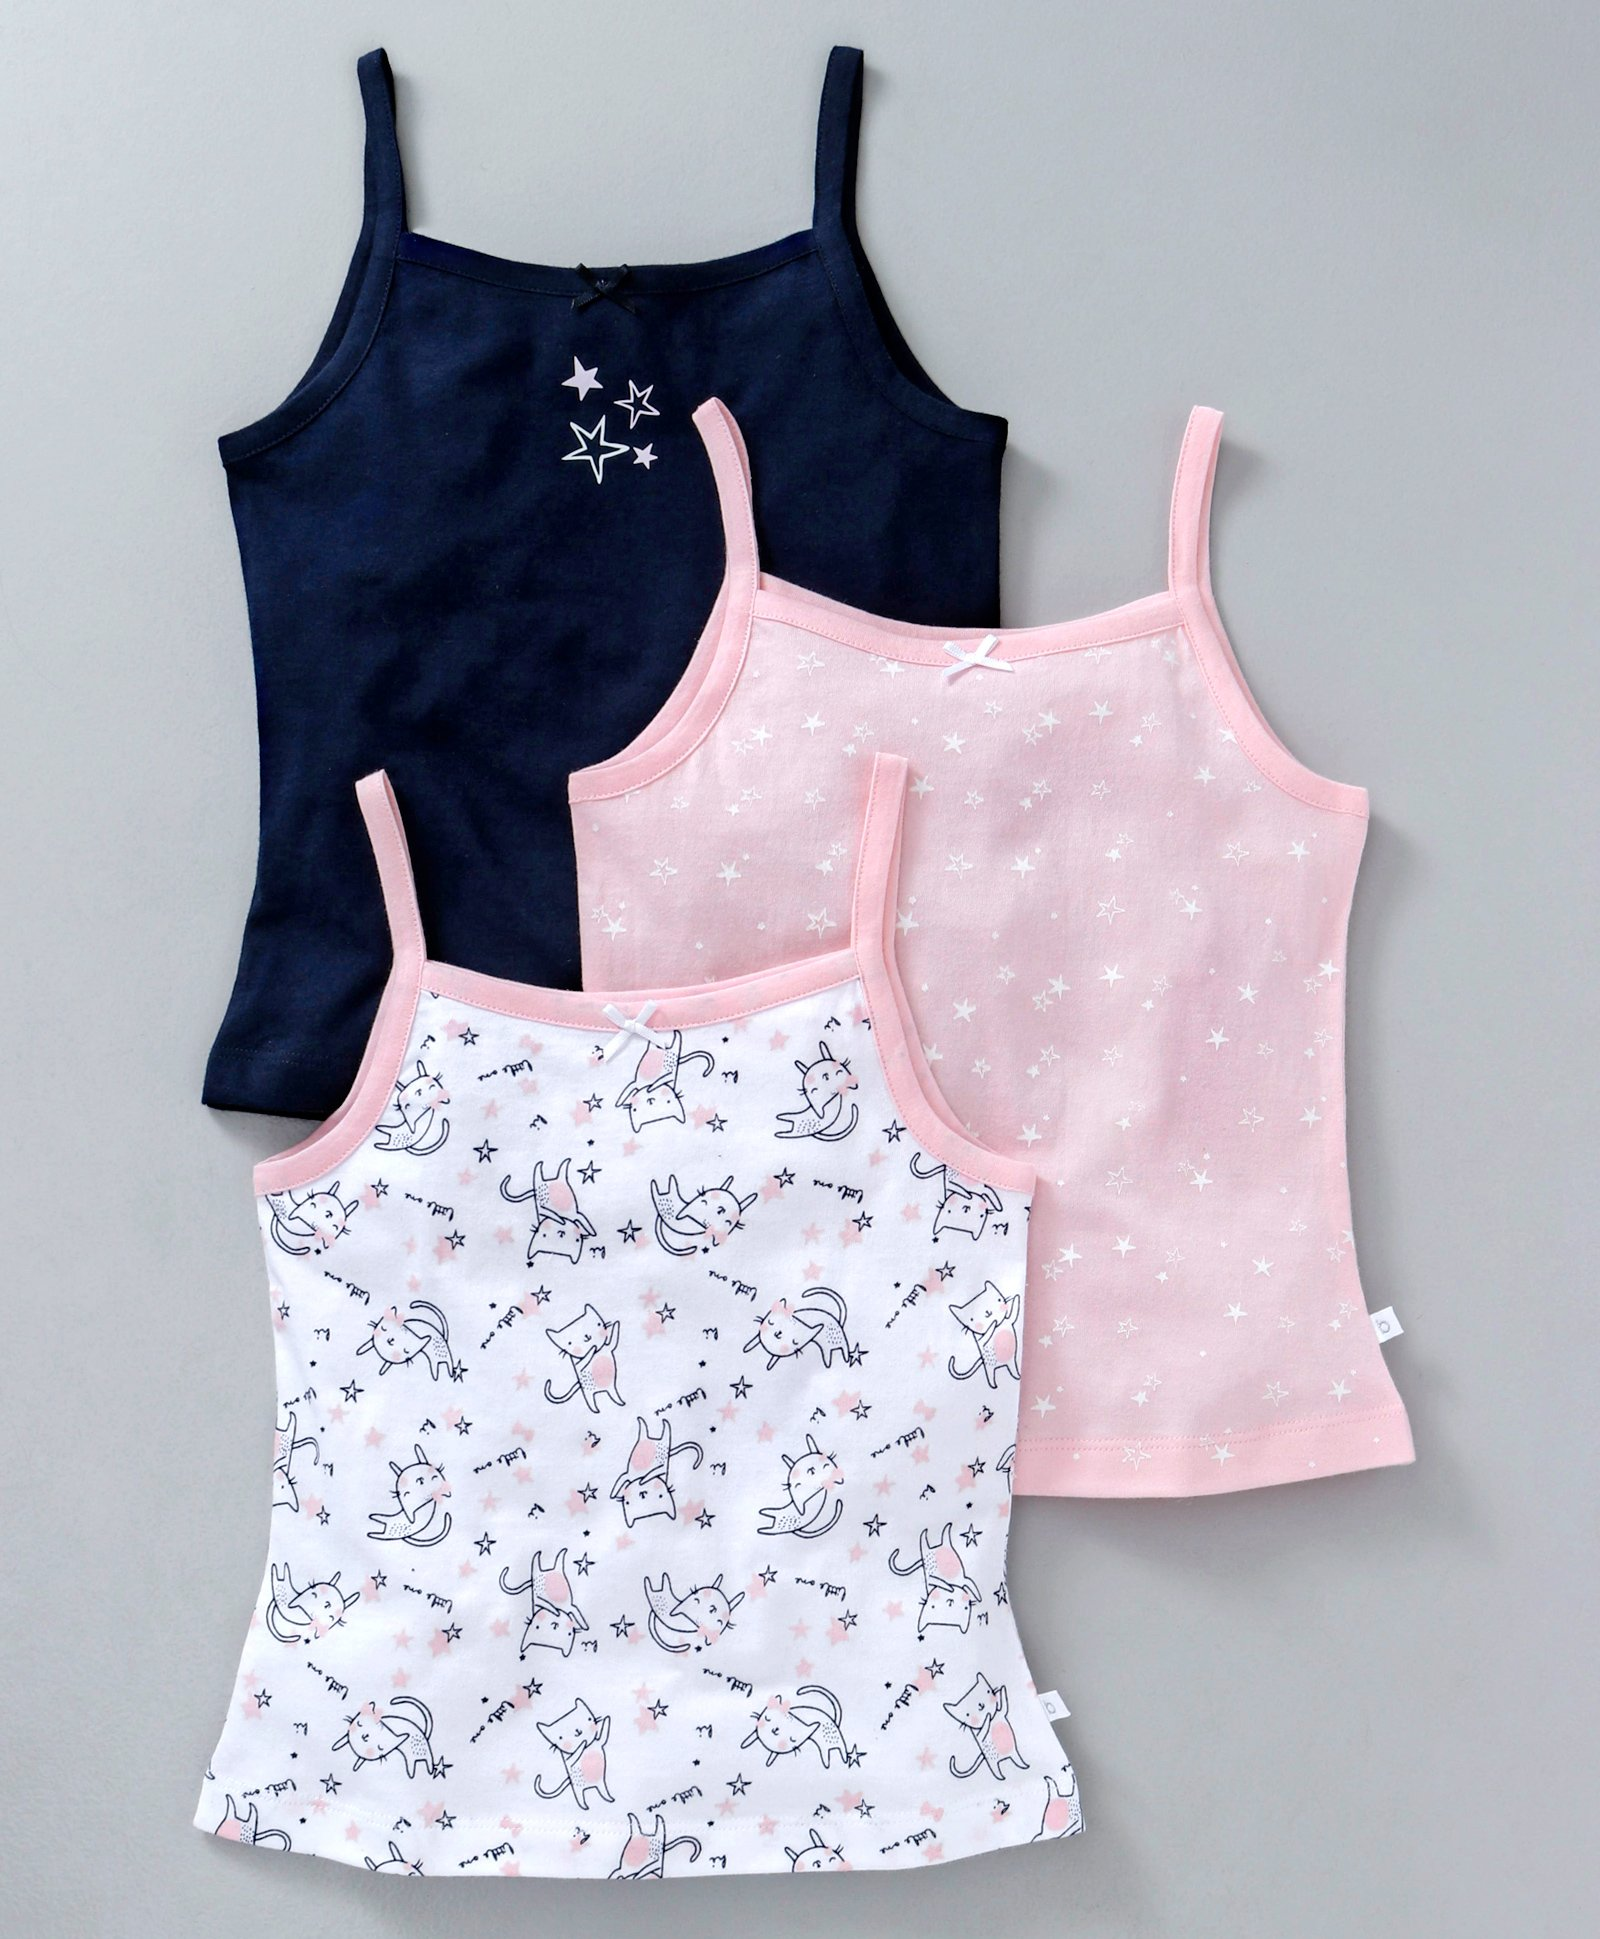 92706006a Buy Babyoye Cotton Singlet Printed Camisoles Pack of 3 Navy Pink ...